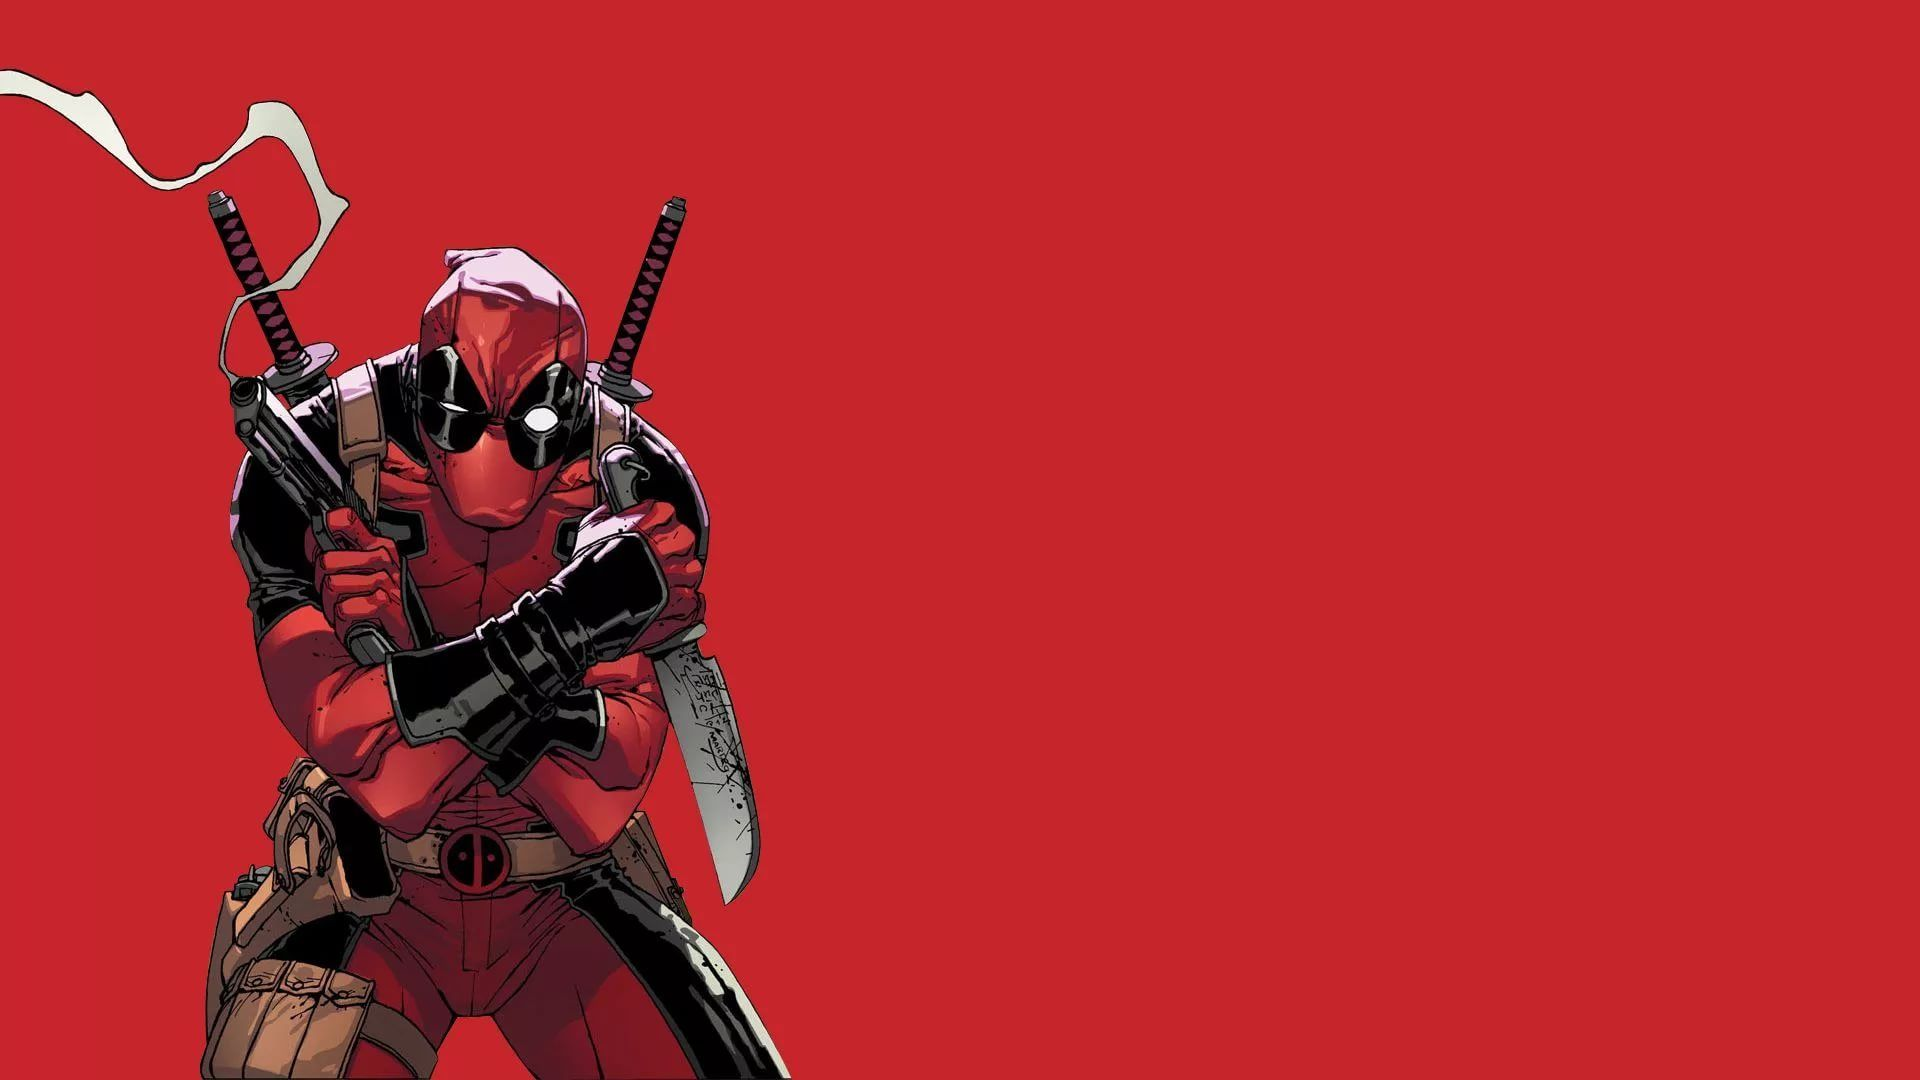 Cool Deadpool wallpaper picture hd